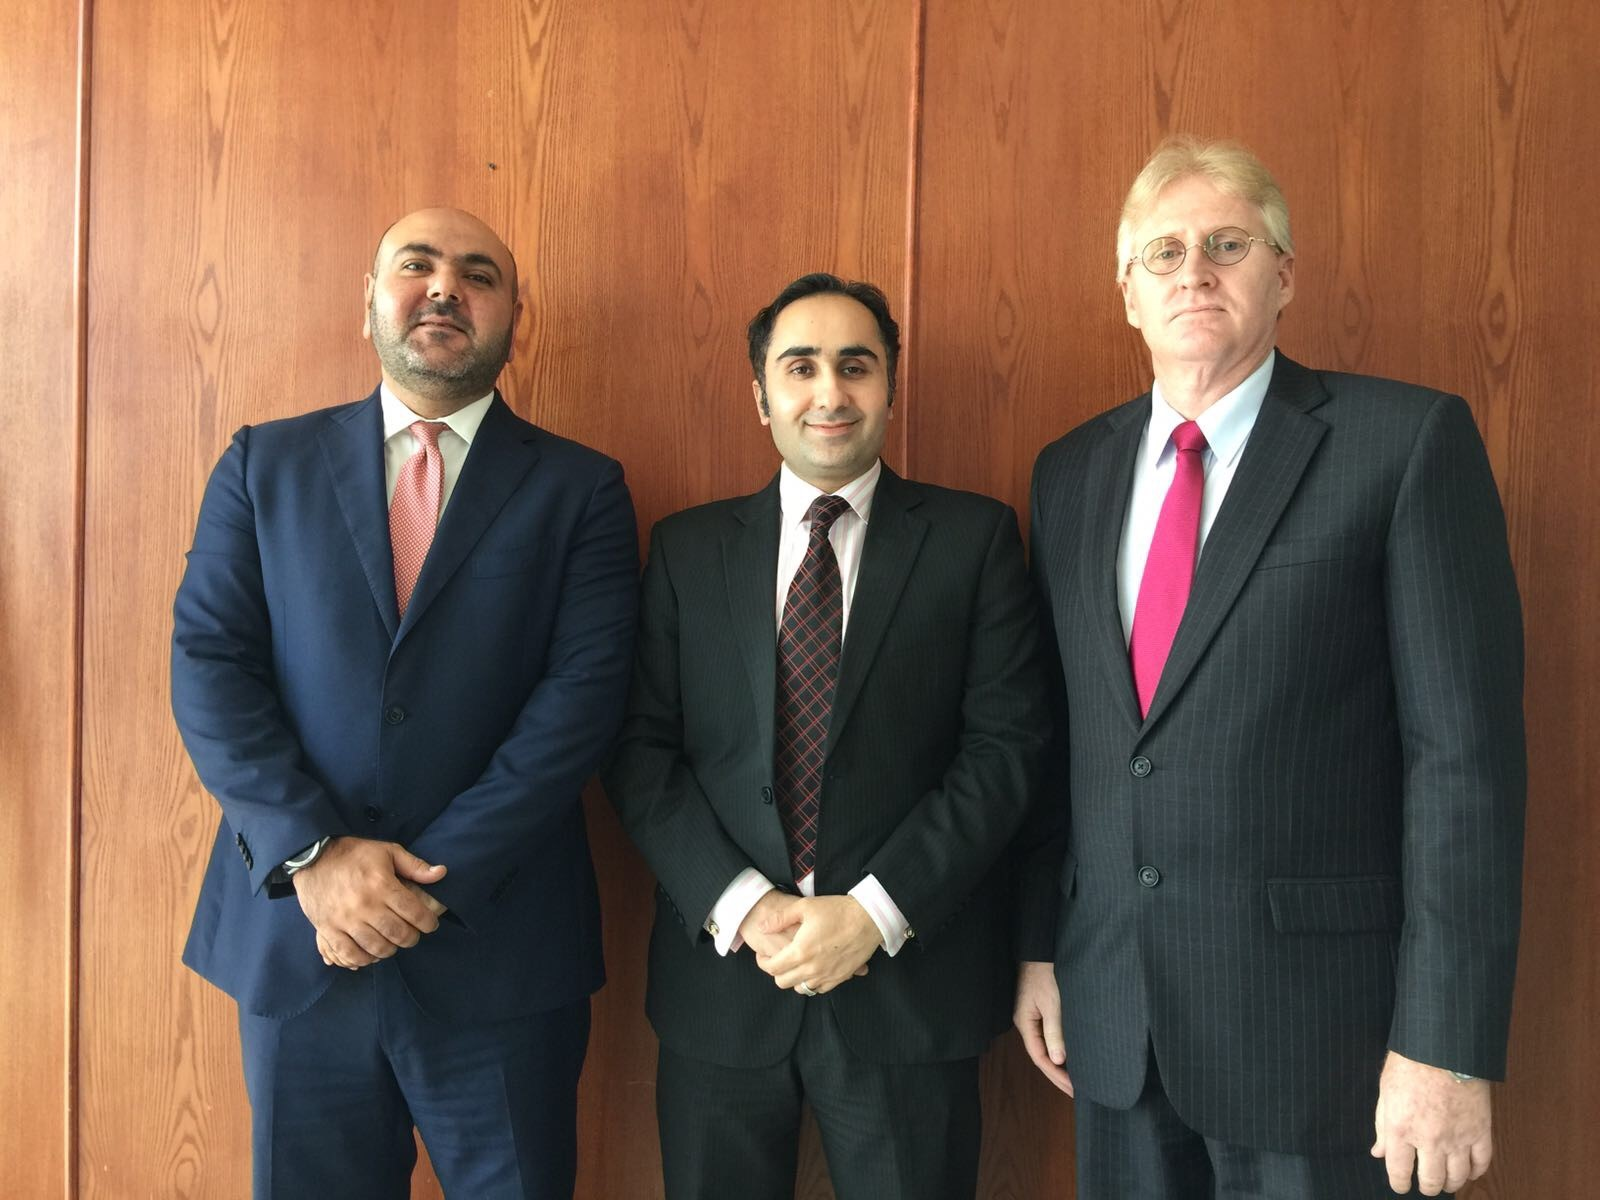 Doha Chapter Leaders. From left to right, Charbel Mehanna, CFE, Imran Zia, CFE, and Ralph Lake, CFE